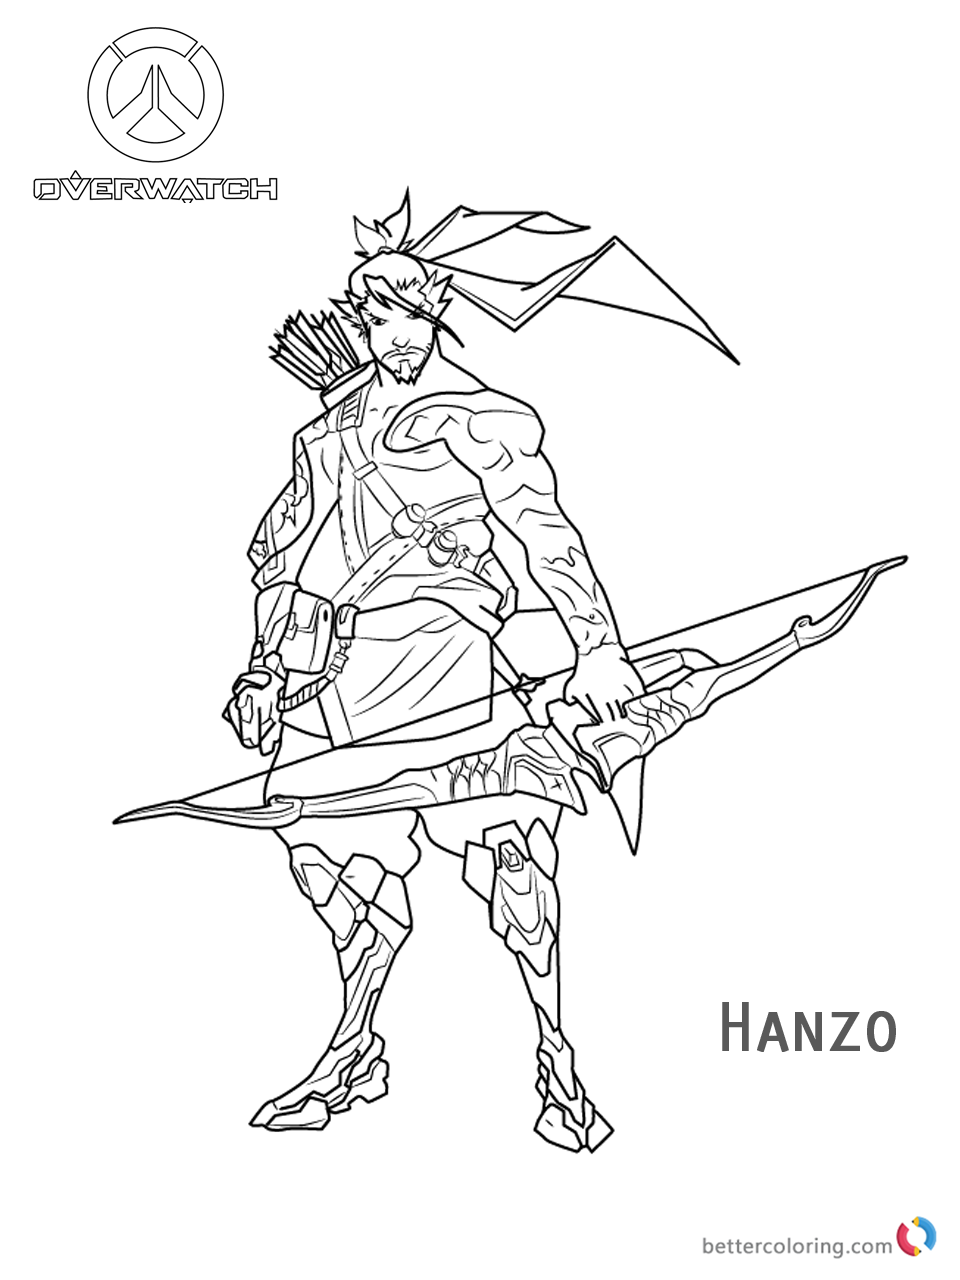 Hanzo from Overwatch coloring pages printable